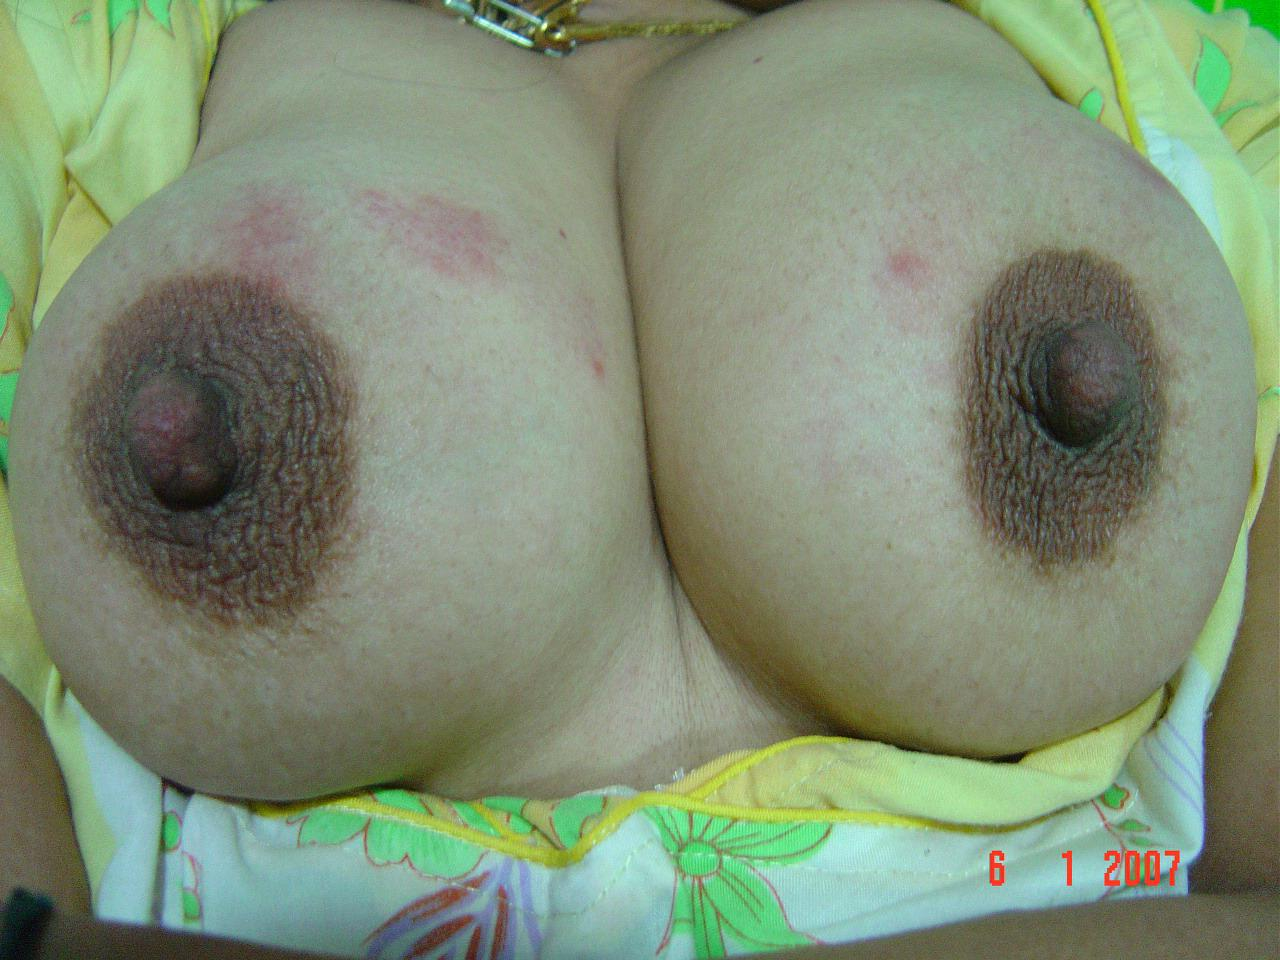 Tamil big pussy aunts image Awesome!!!!